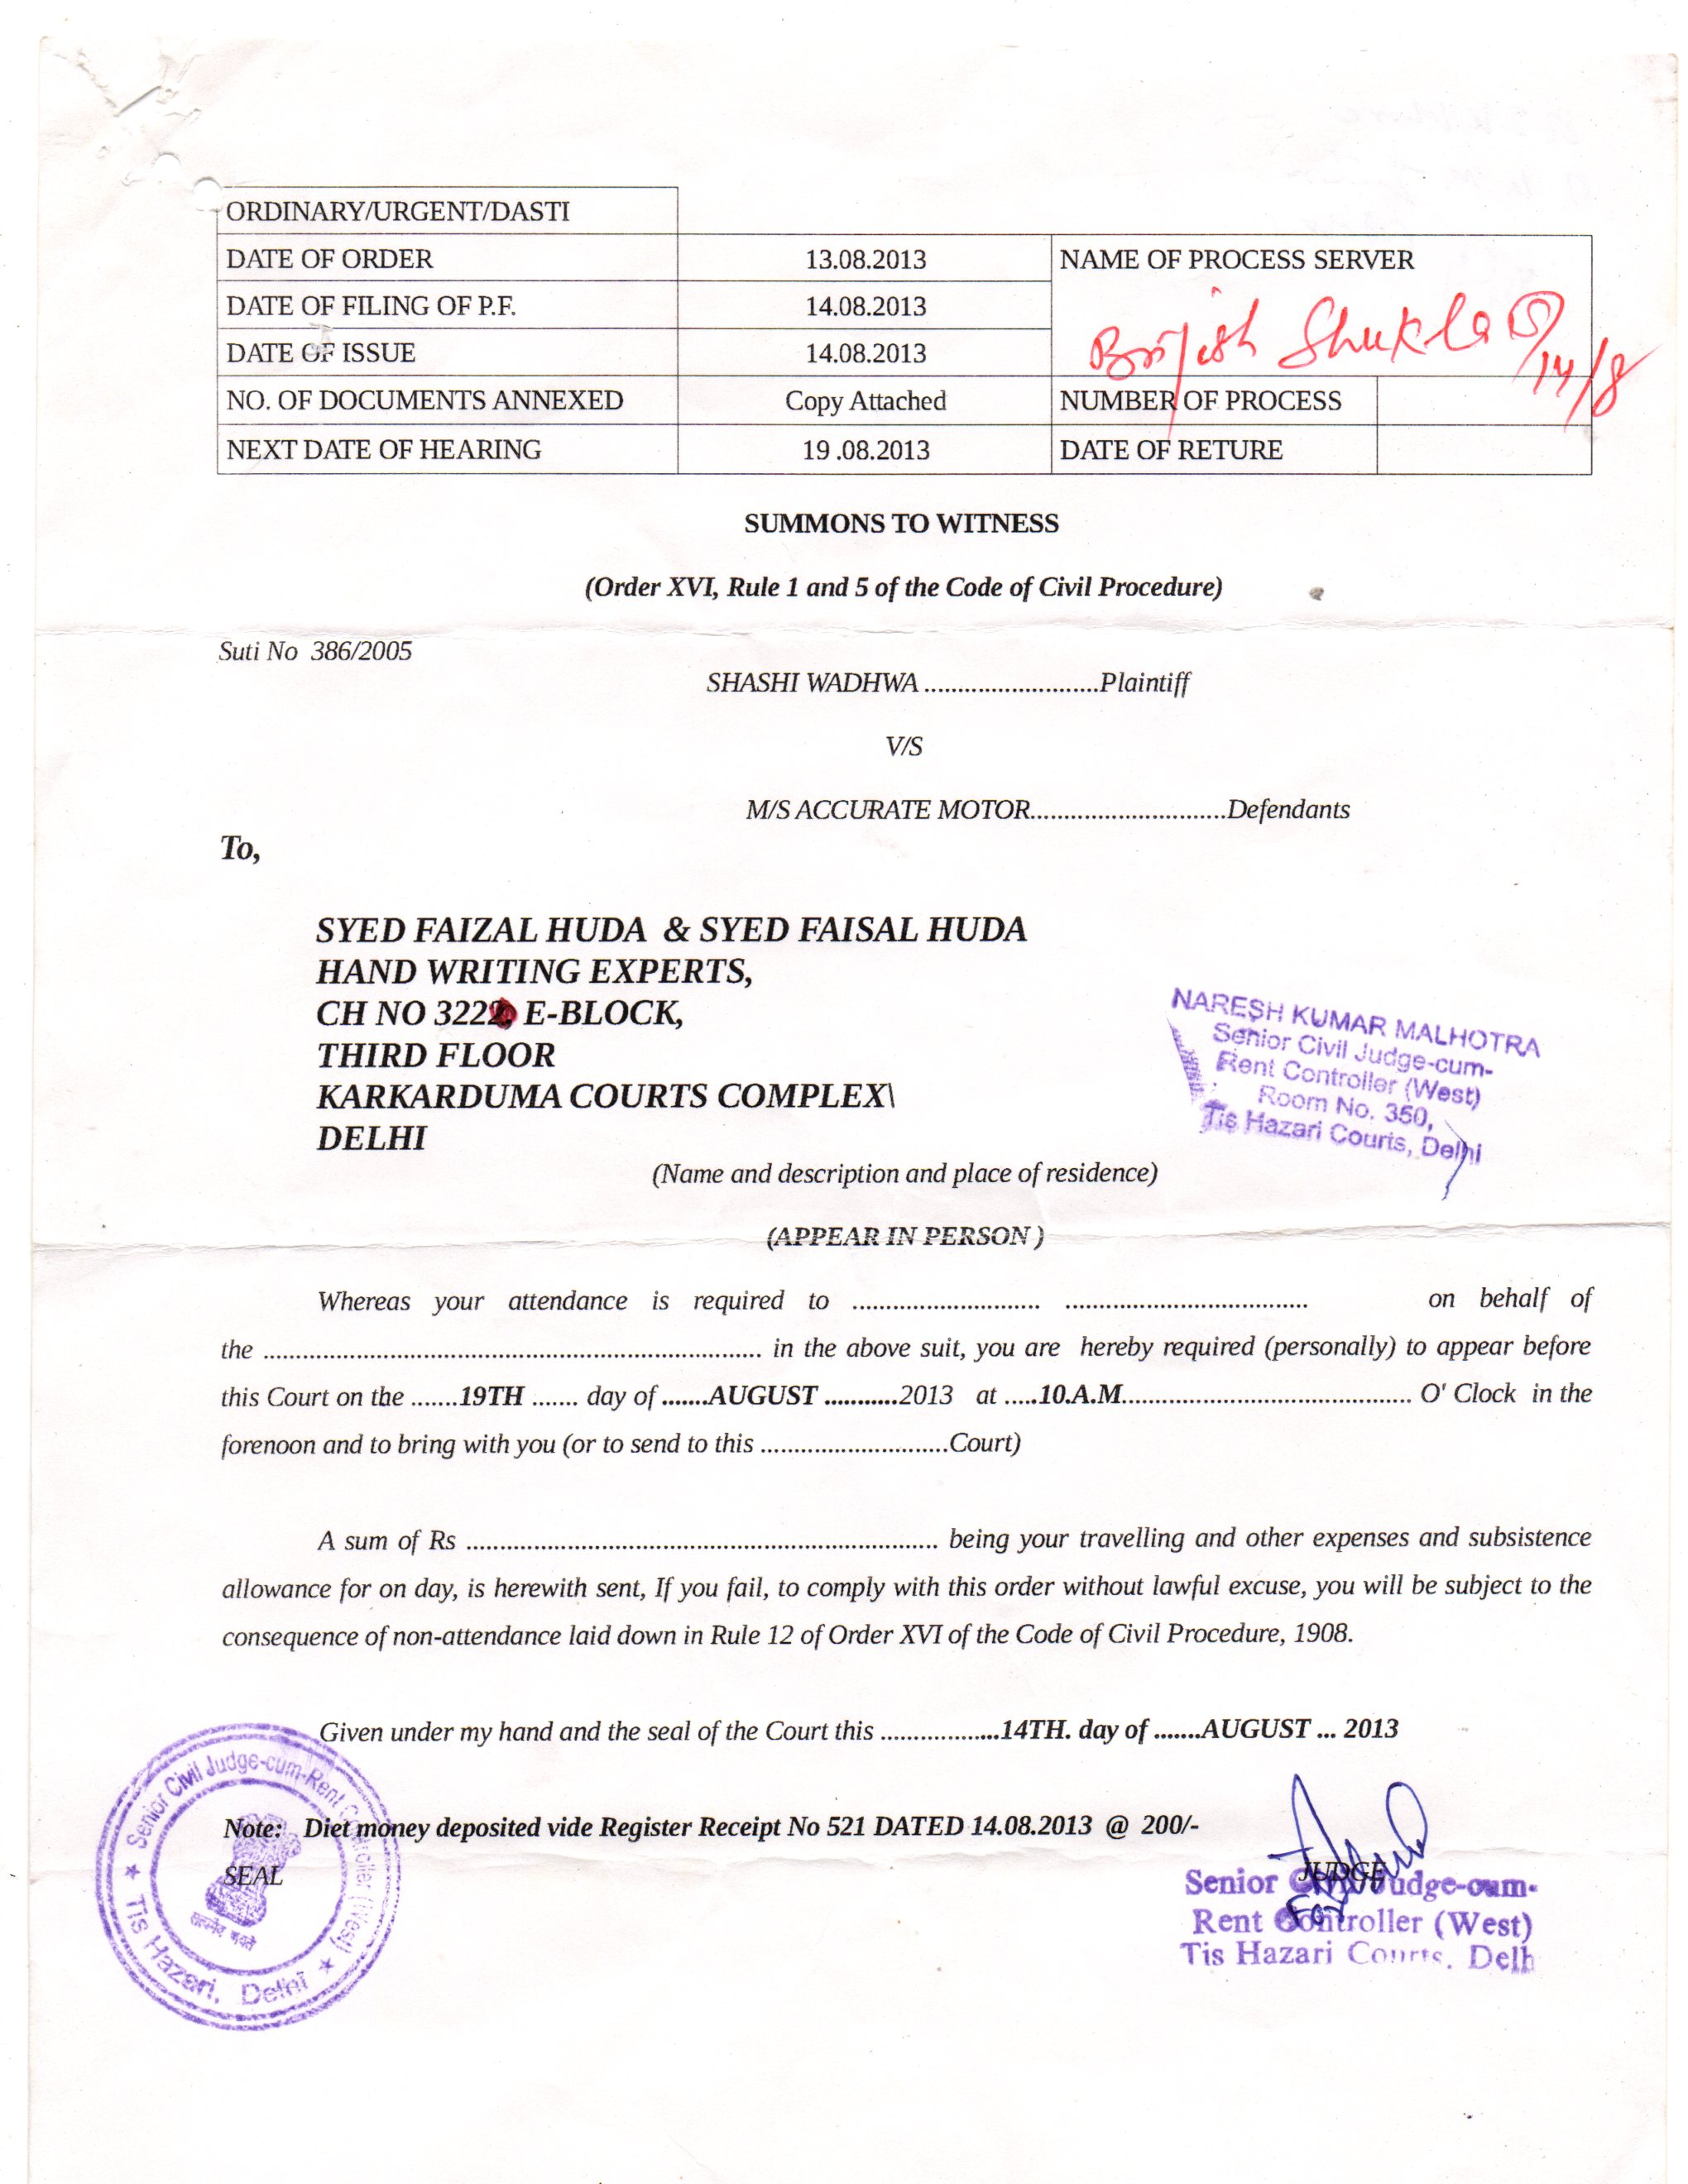 SUMMON FROM THE COURT OF SH. NARESH KUMAR MALHOTRA, TISHAZARI